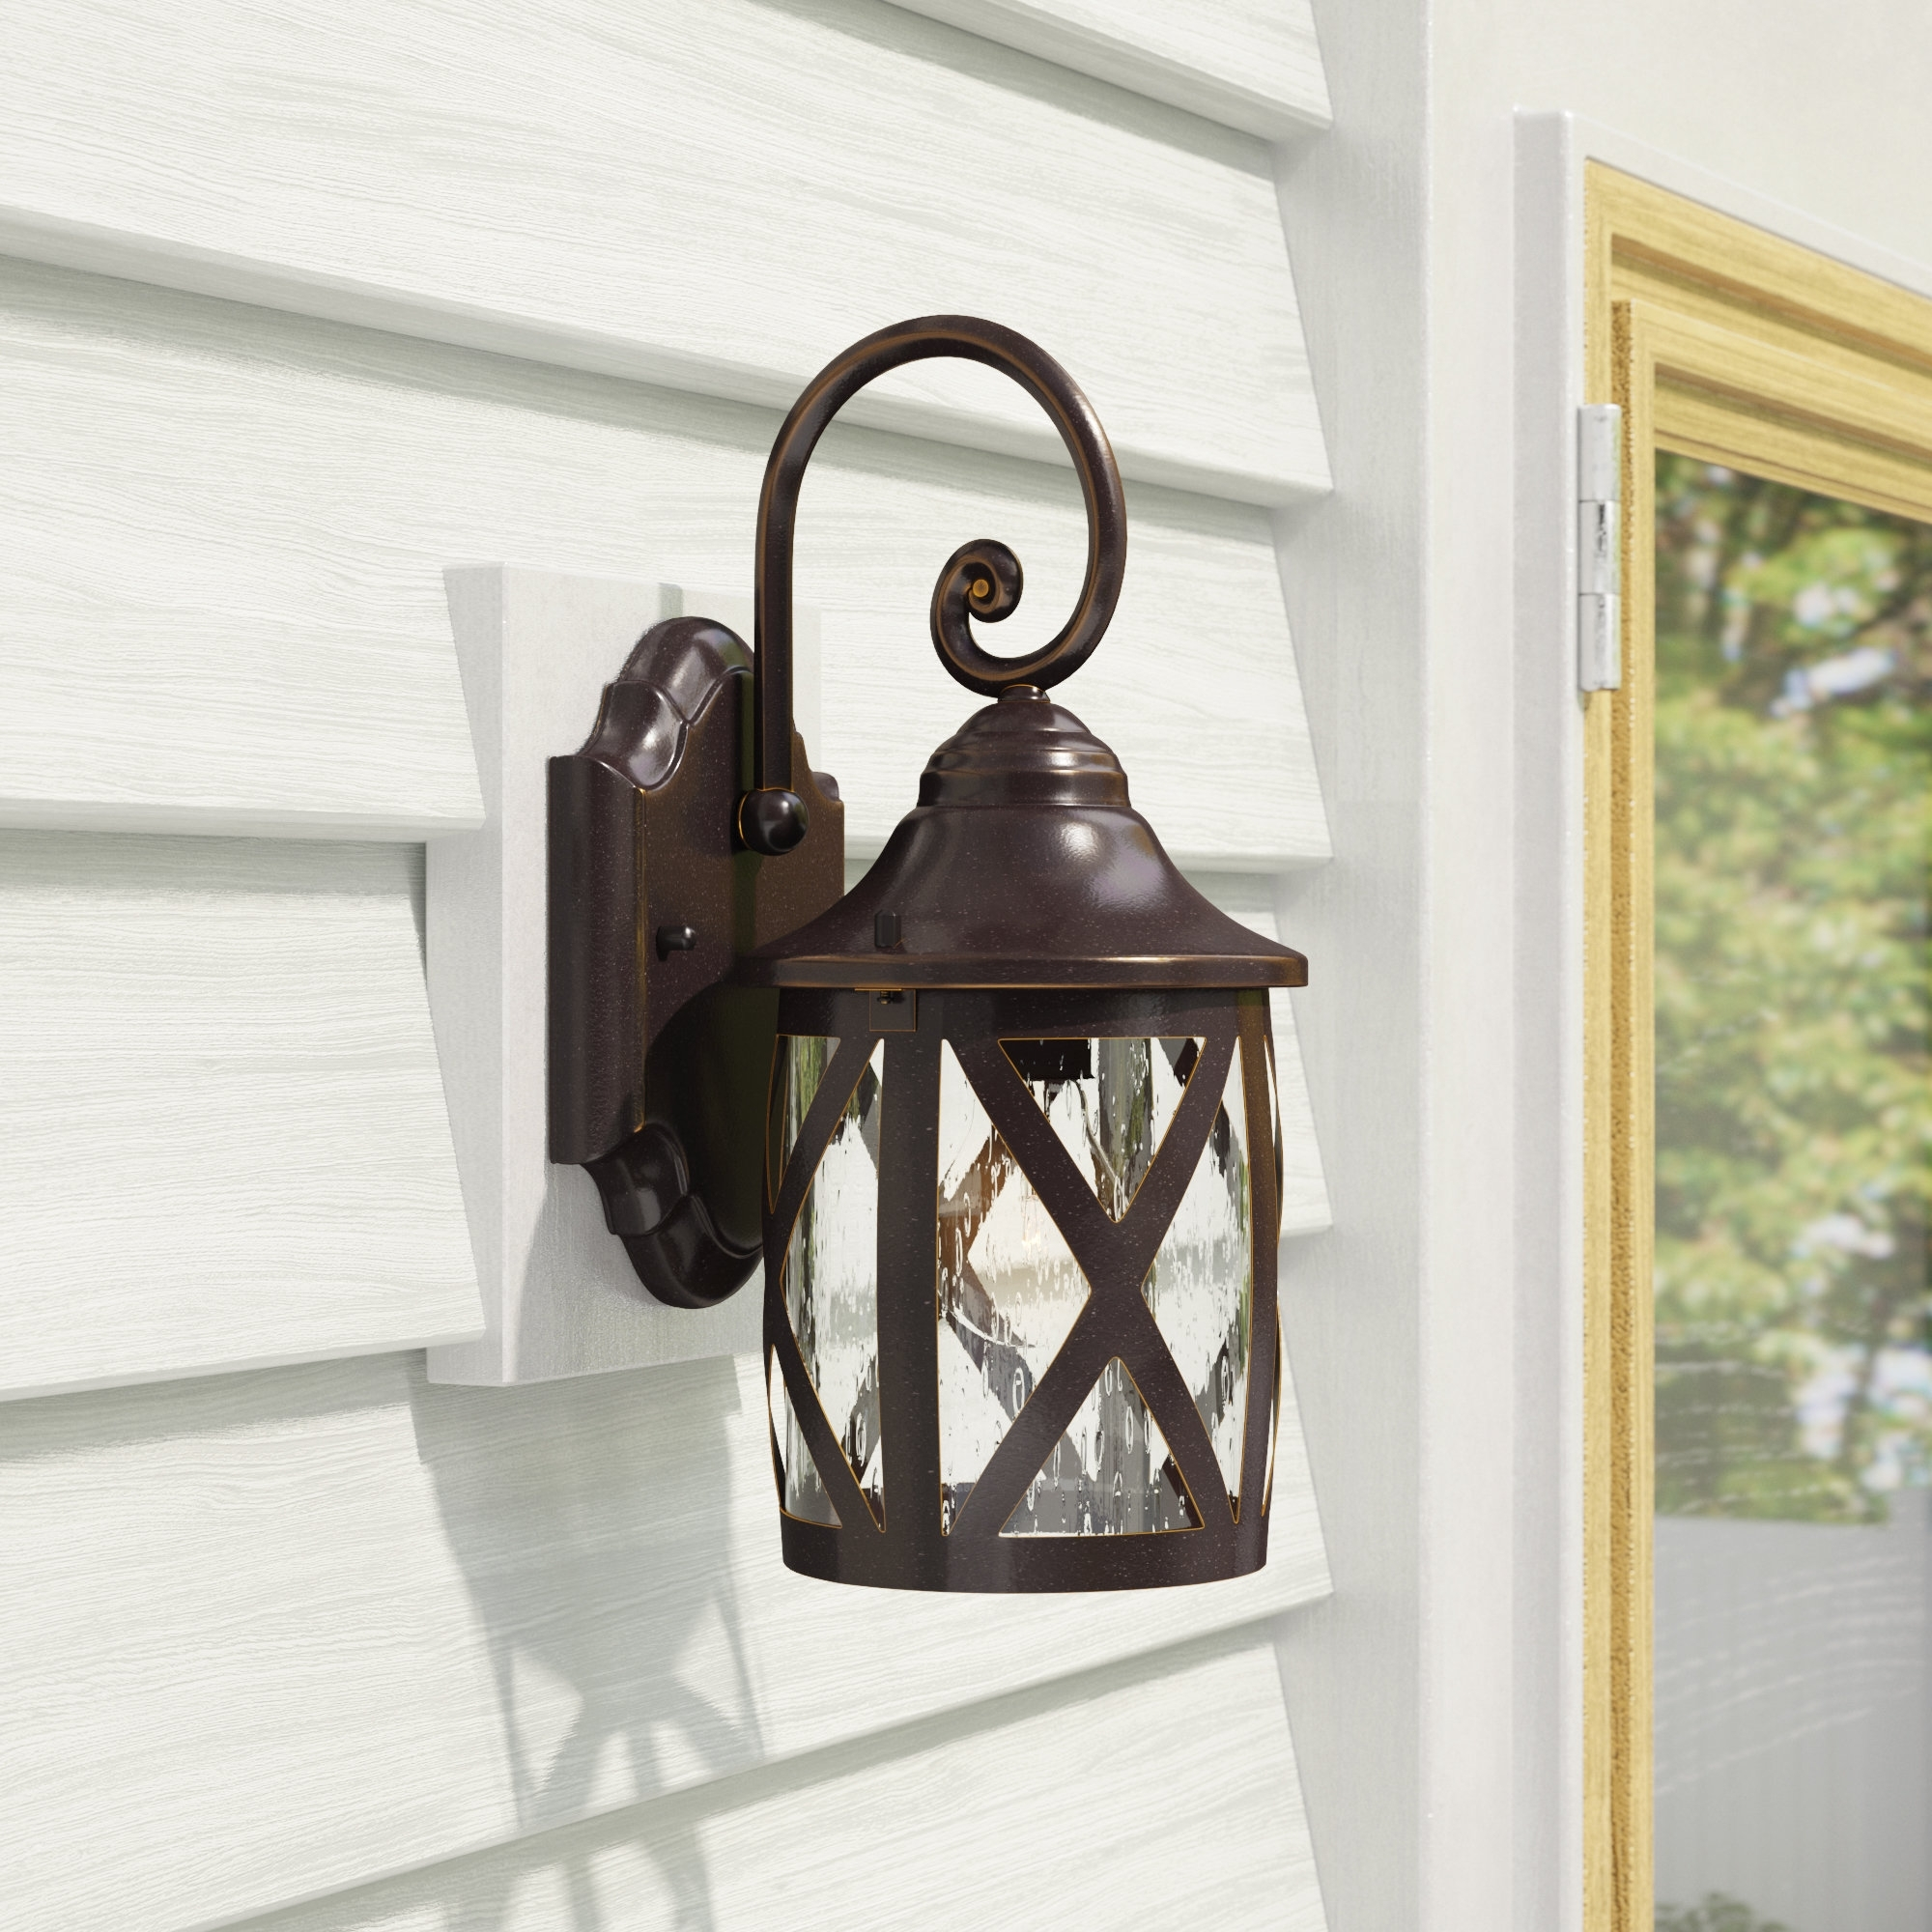 Joanns Outdoor Lanterns Within Preferred Laurel Foundry Modern Farmhouse Landon 1 Light Outdoor Wall Lantern (View 11 of 20)